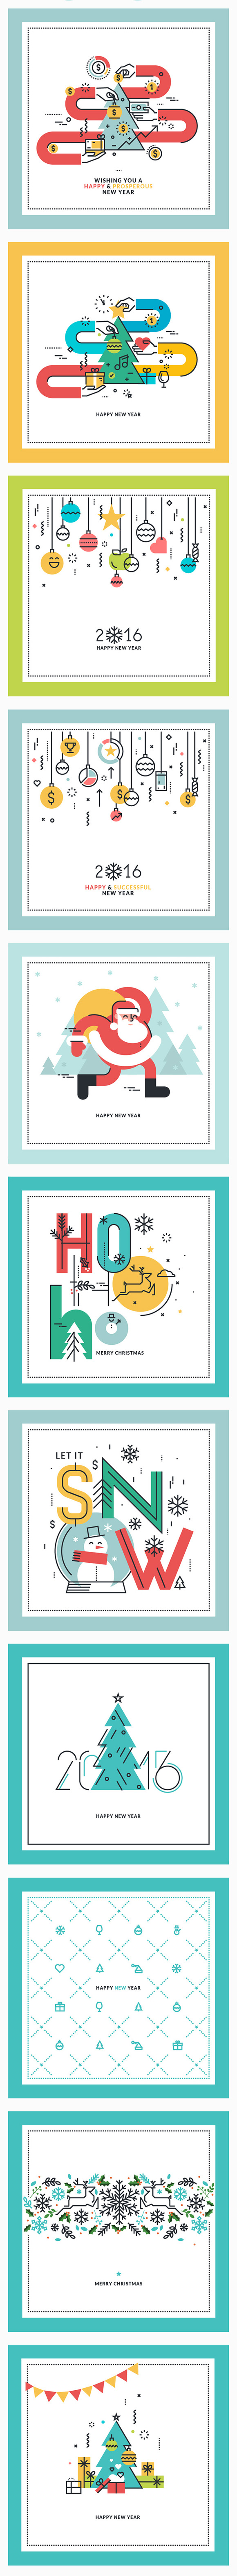 Flat Line Christmas Greeting Cards